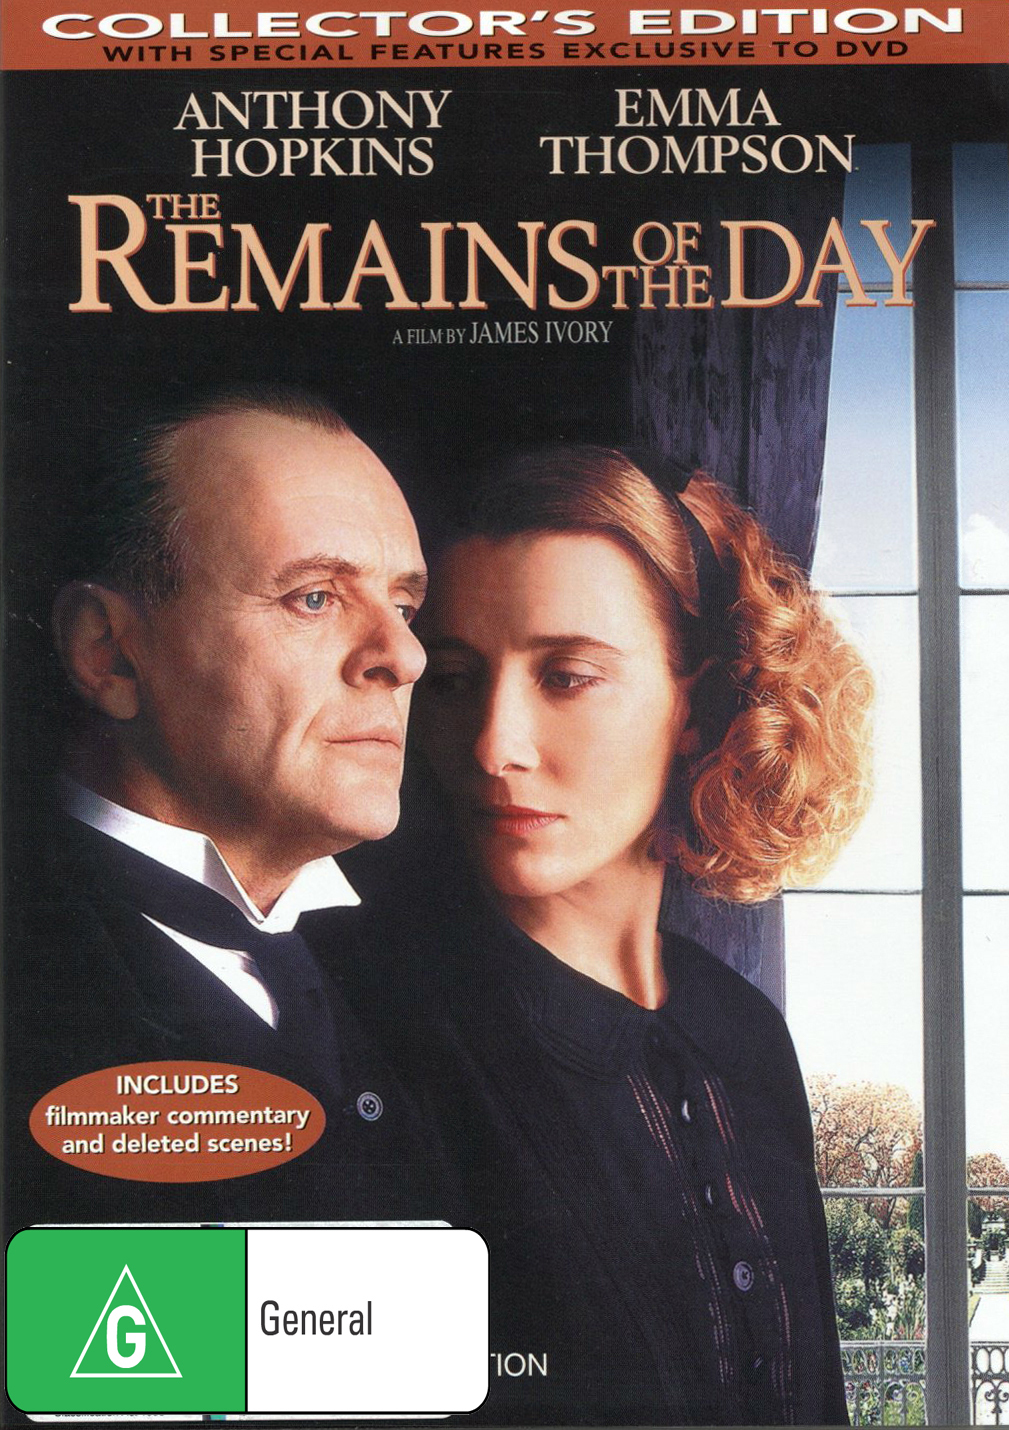 The Remains Of The Day DVD image